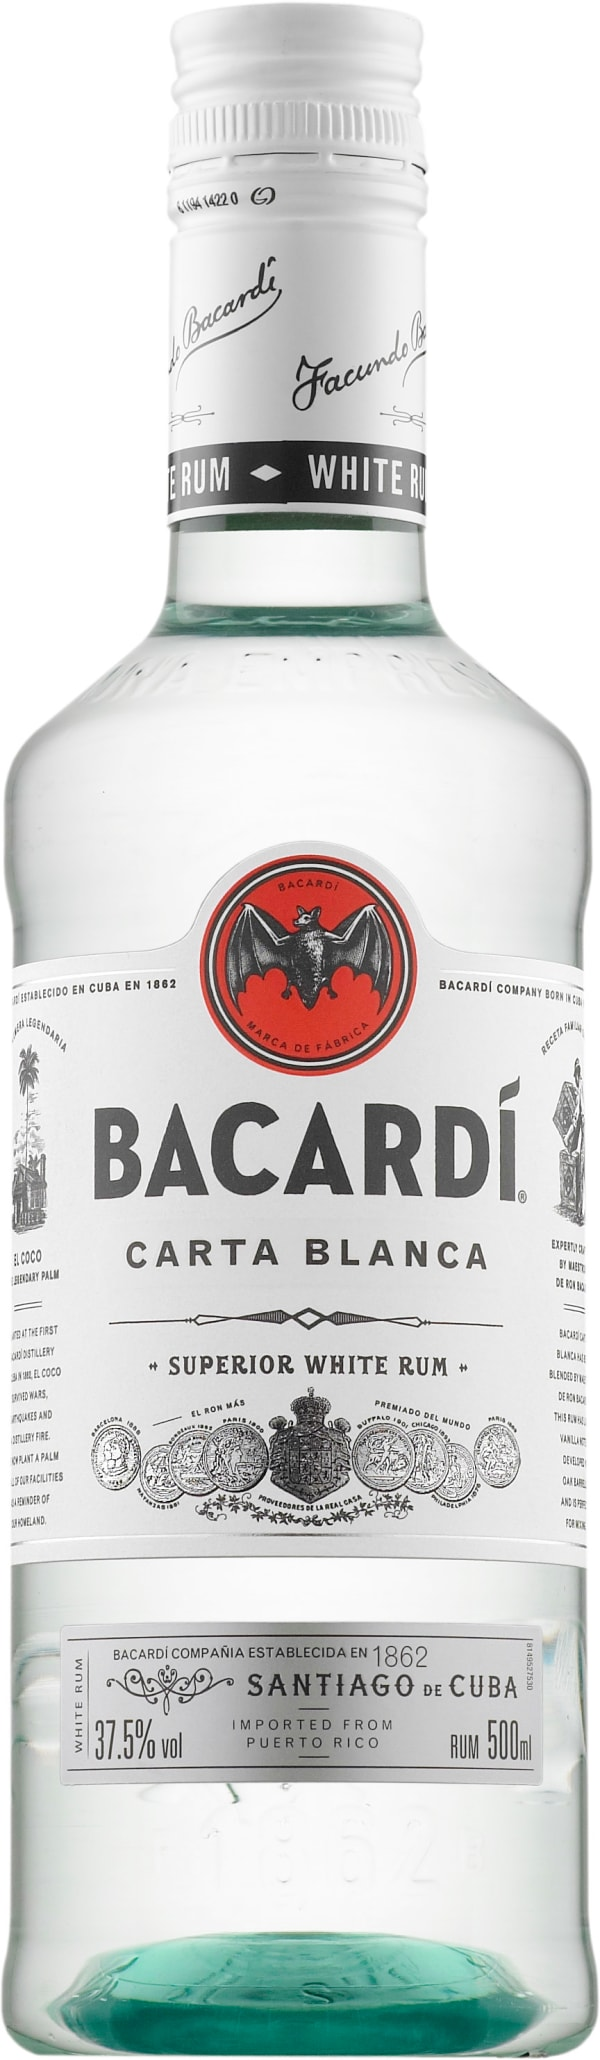 Bacardi Carta Blanca plastic bottle